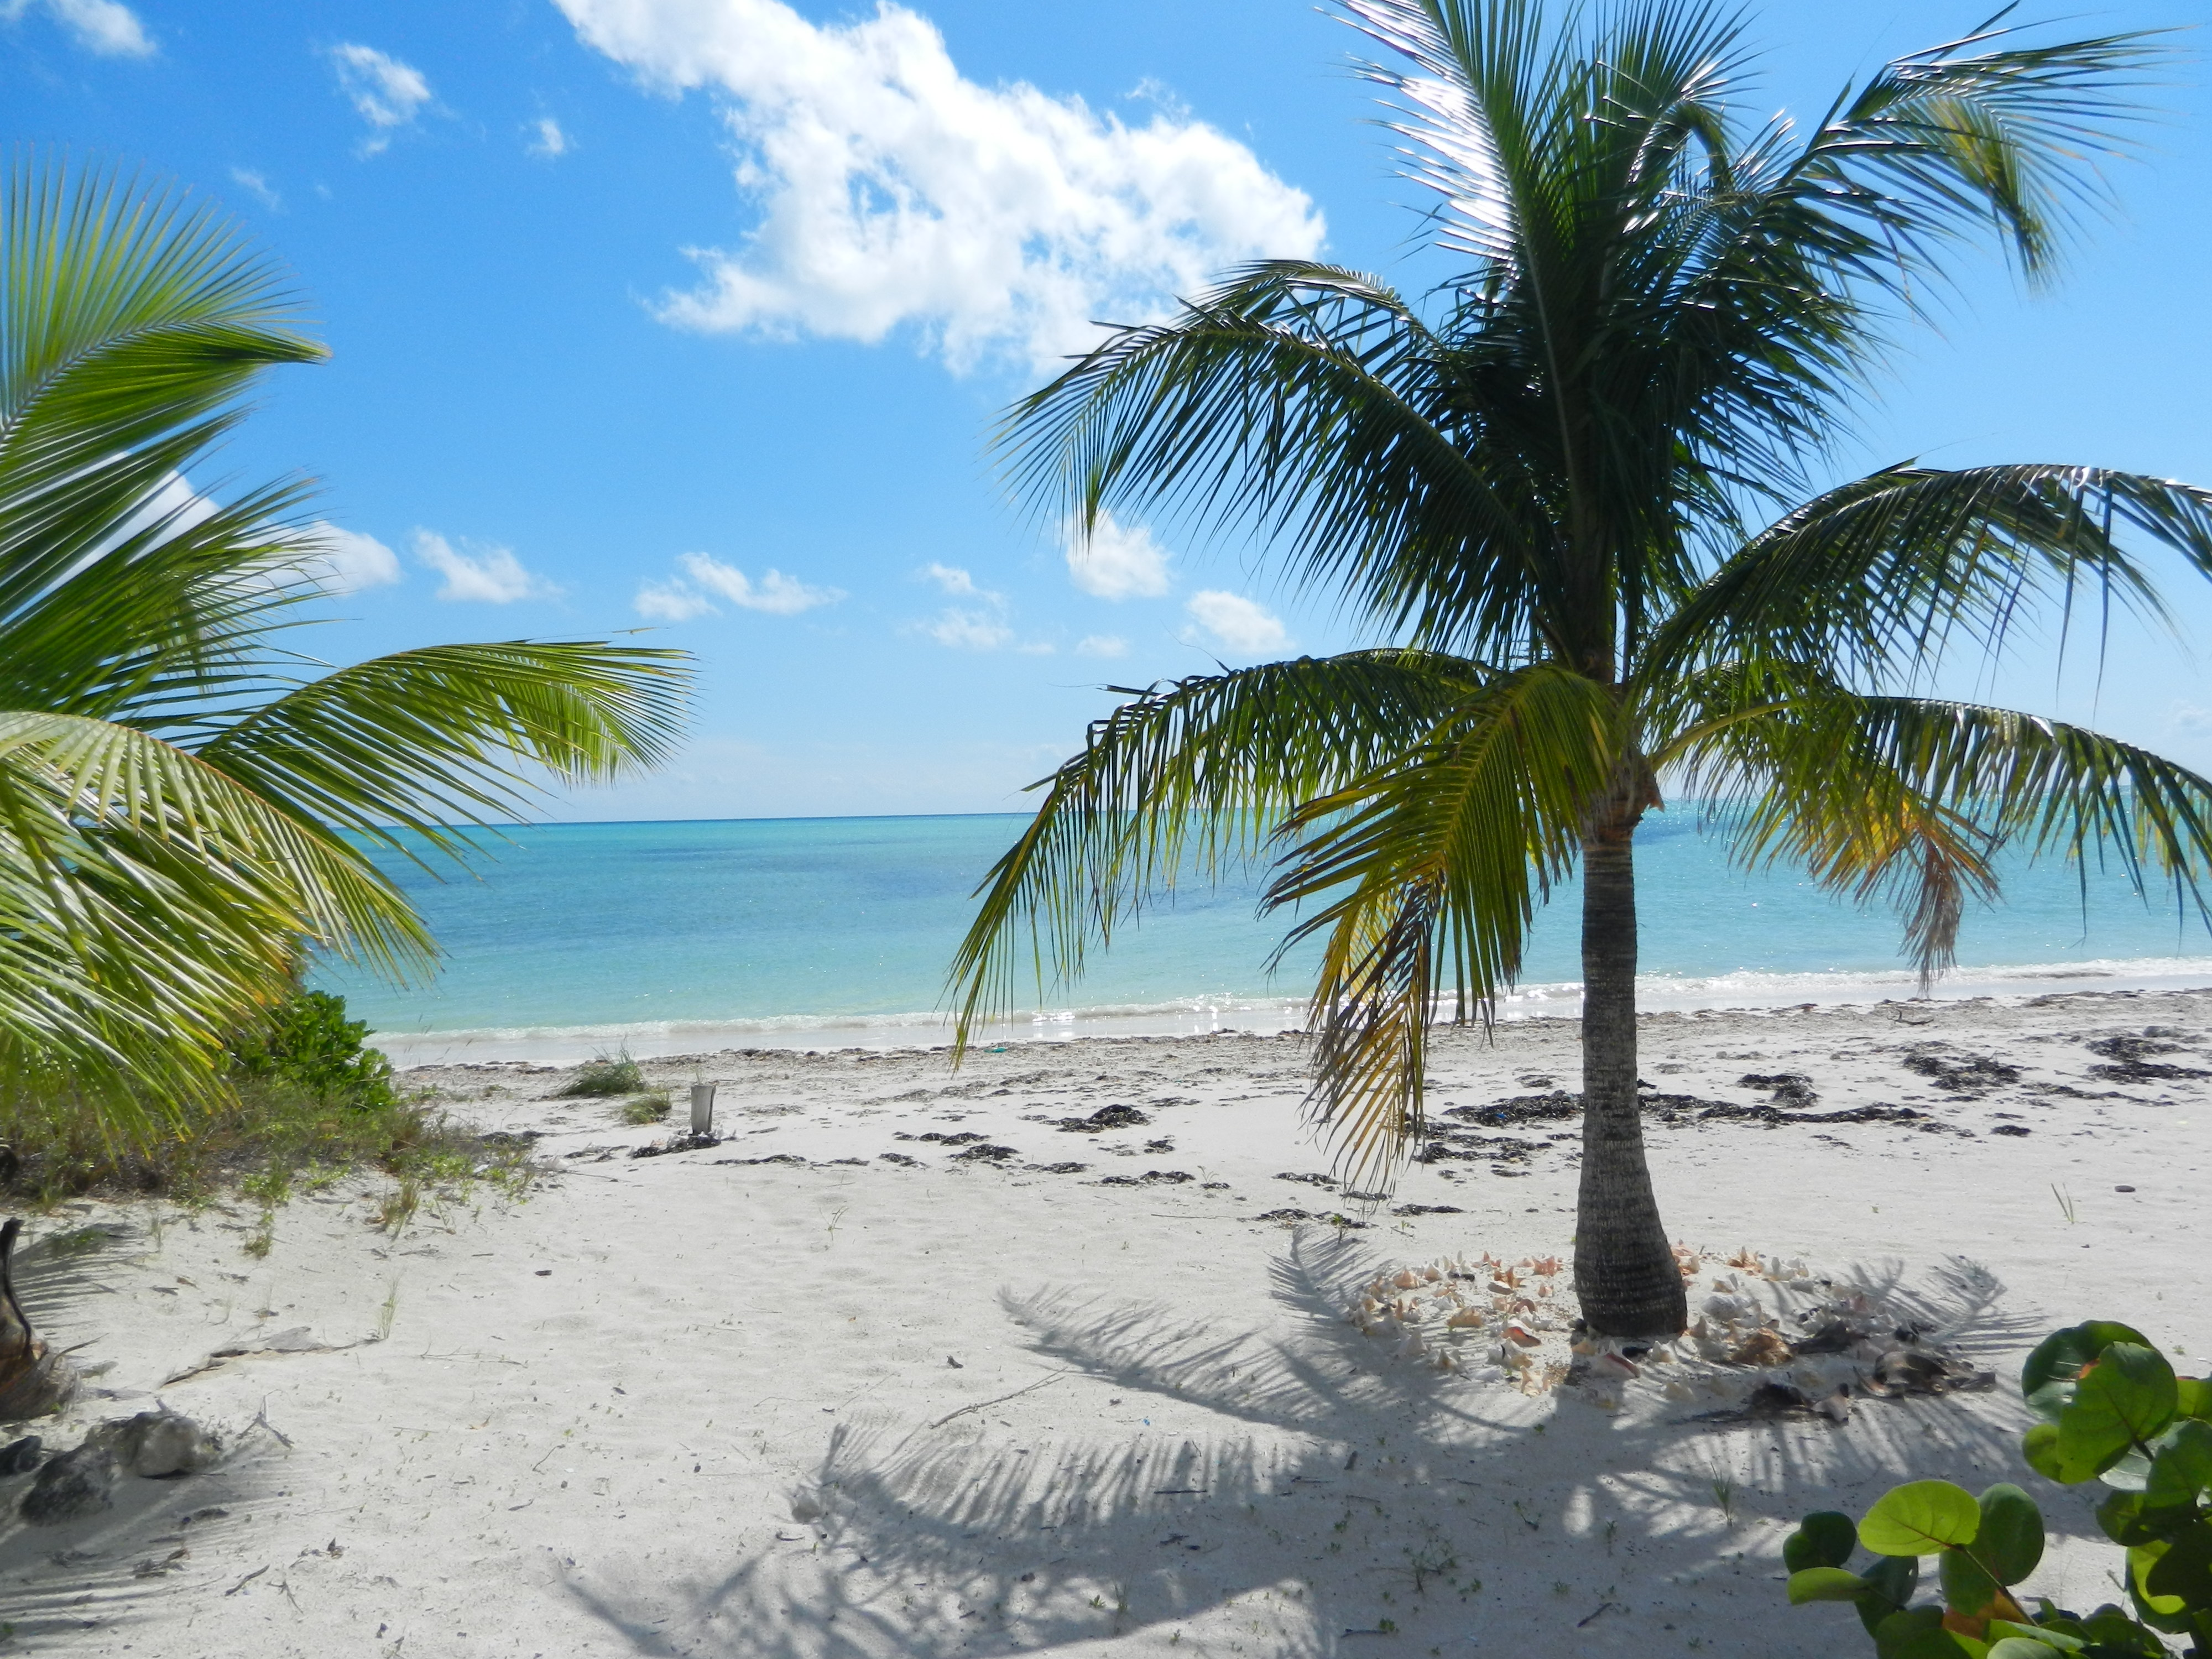 Calypso's Beach has soft white sand, gentle shallow water, and beautiful coconut trees.